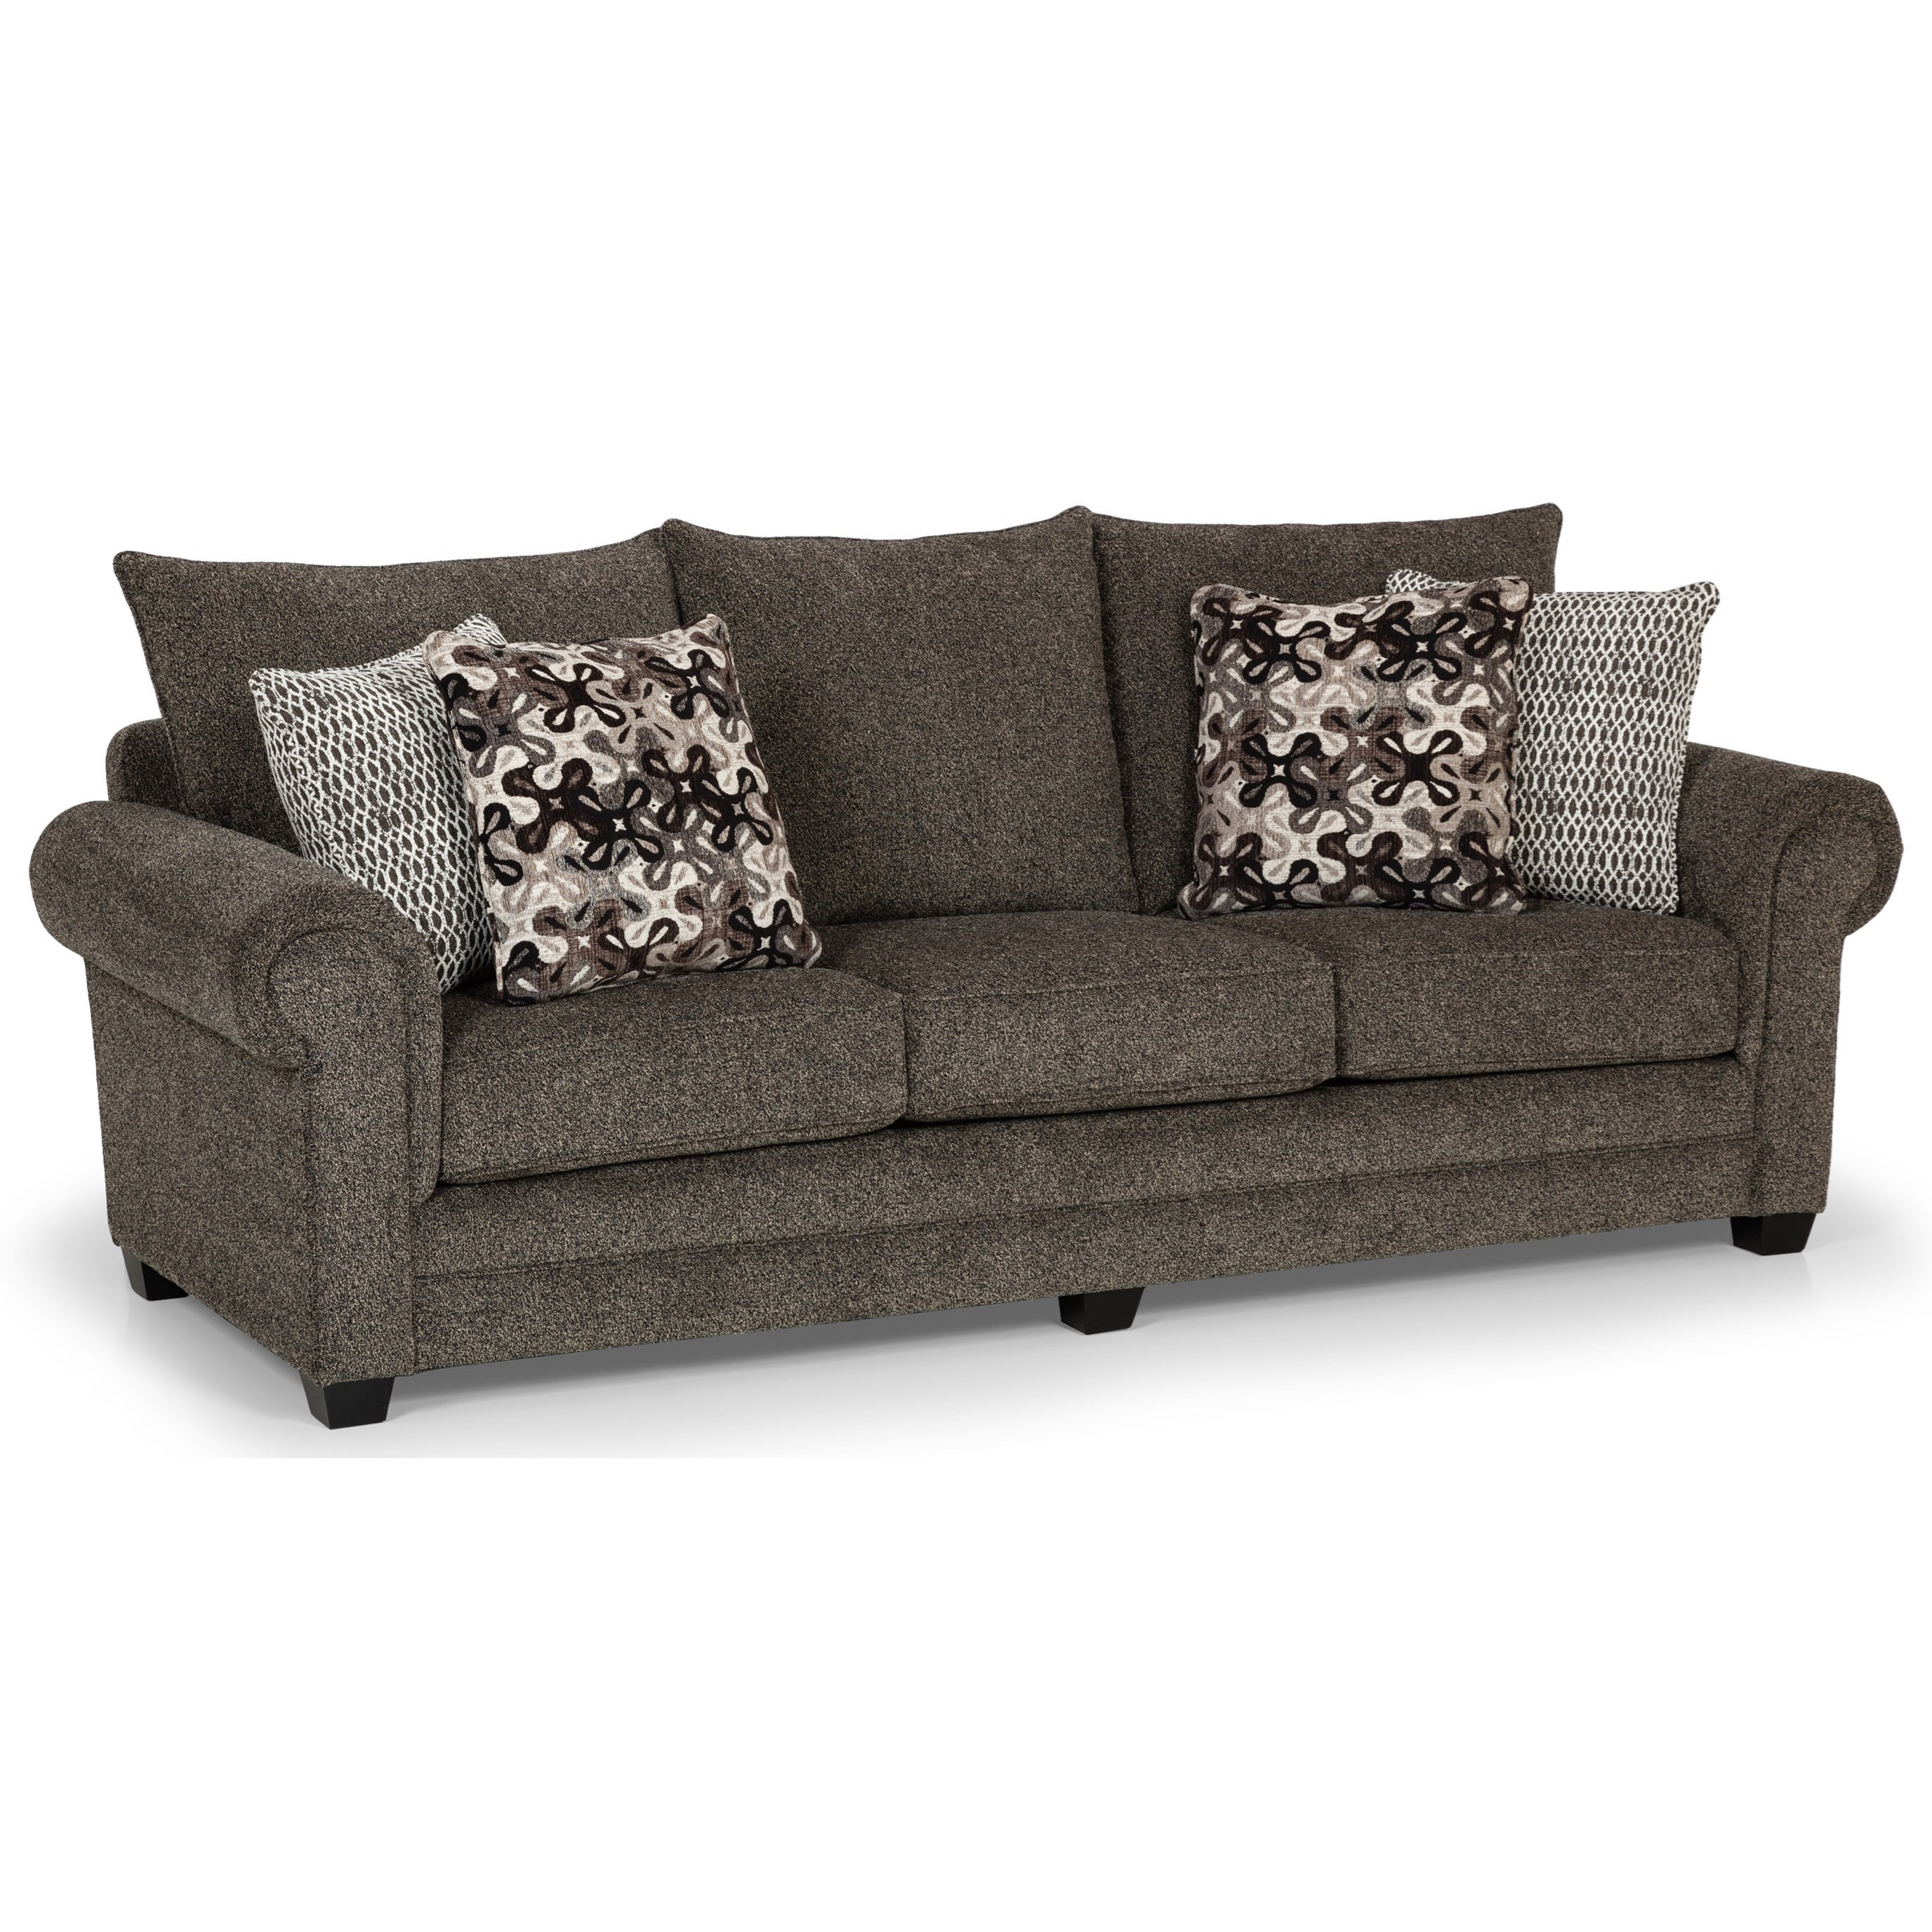 29820 Sofa by Sunset Home at Sadler's Home Furnishings